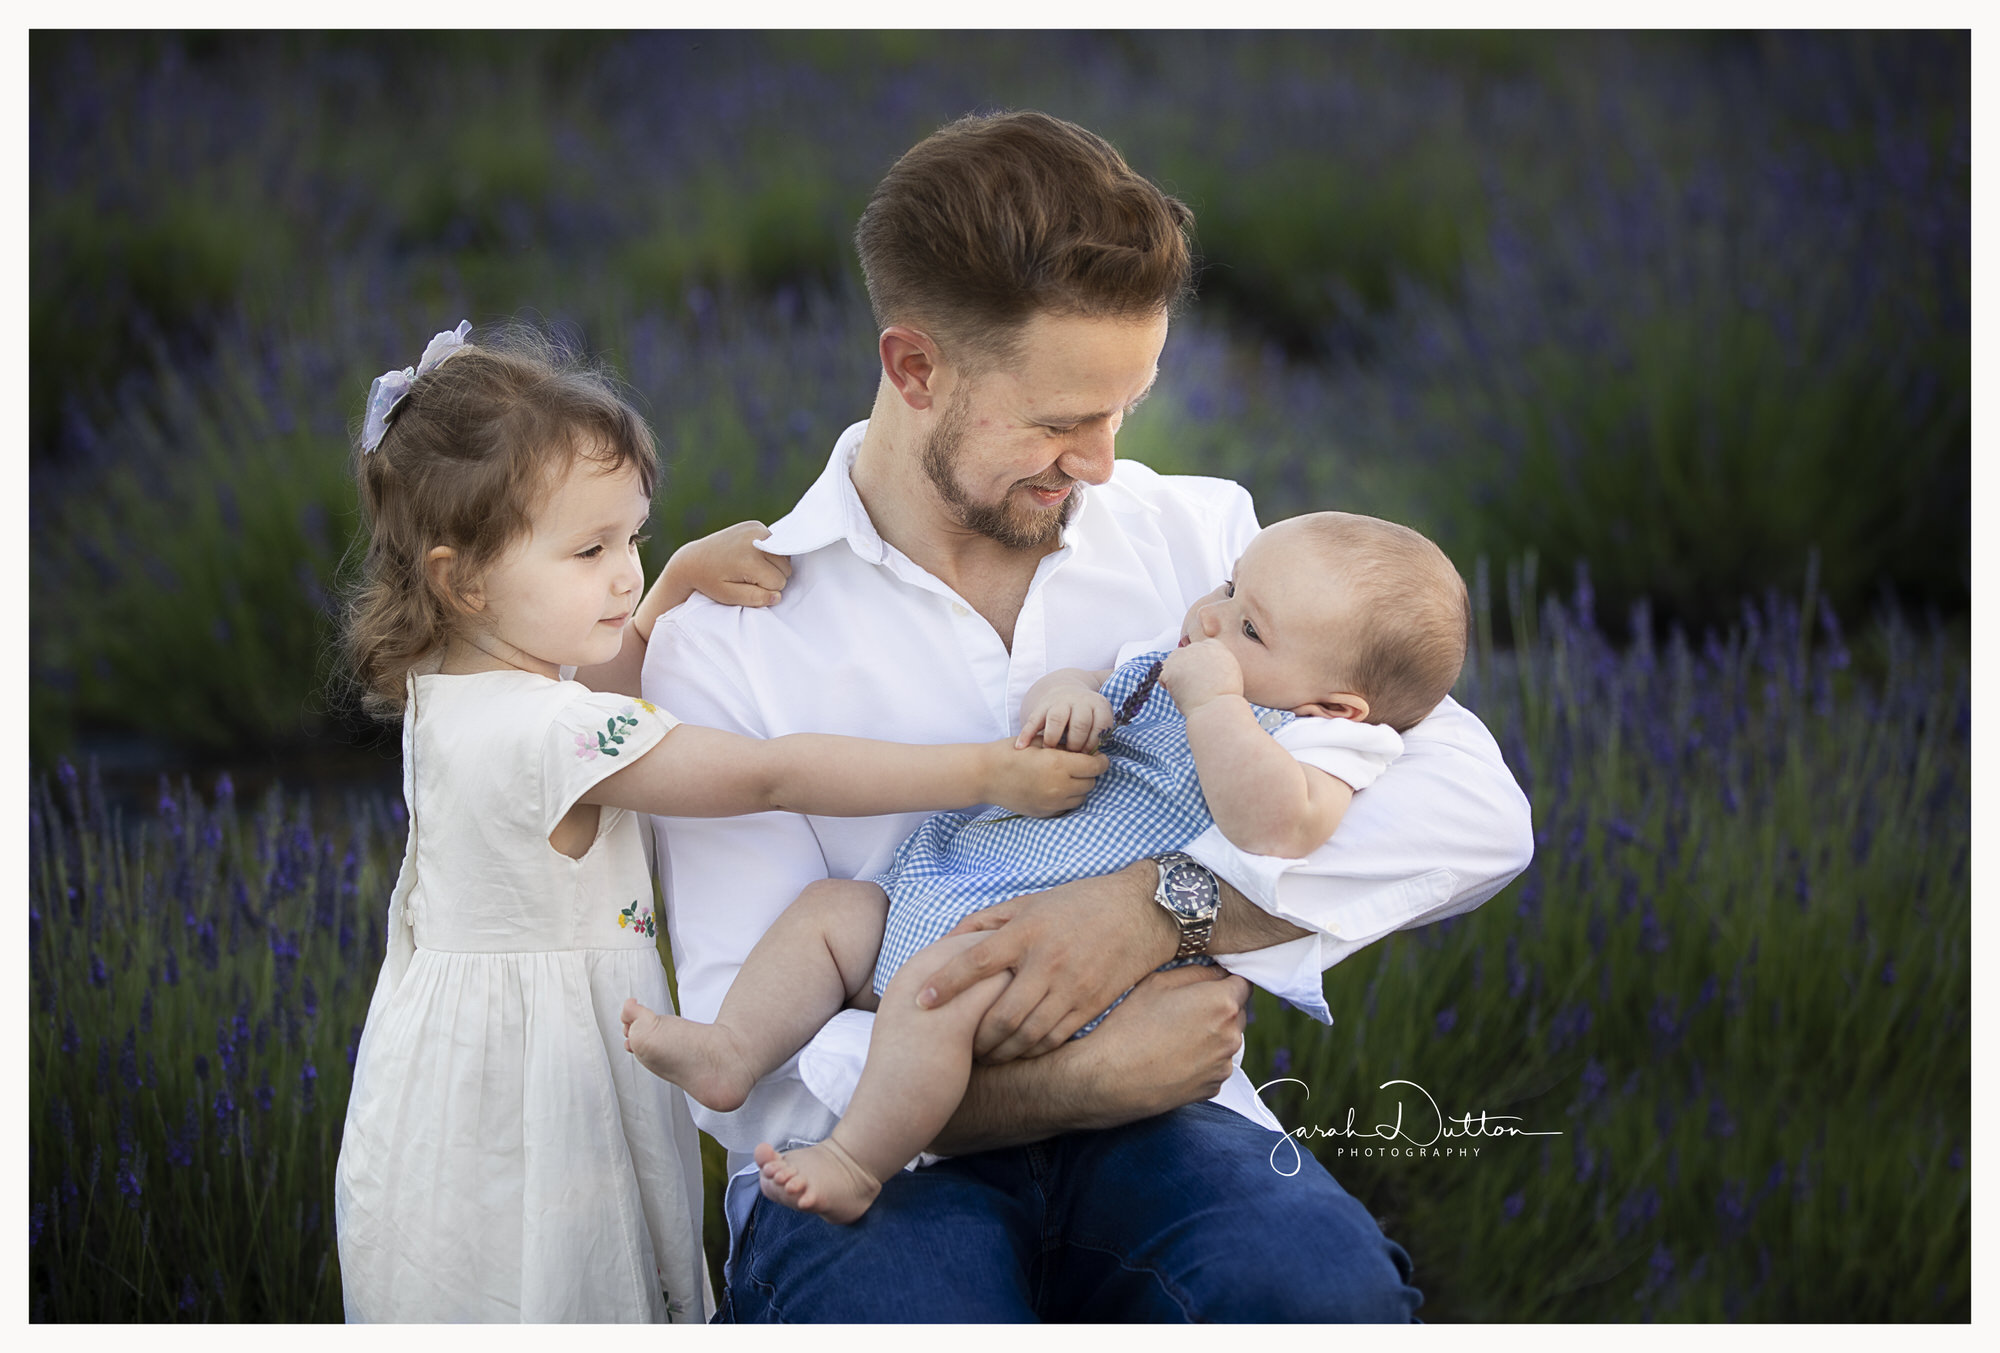 Family photography portrait taken outdoors in Whitchurch Hampshire